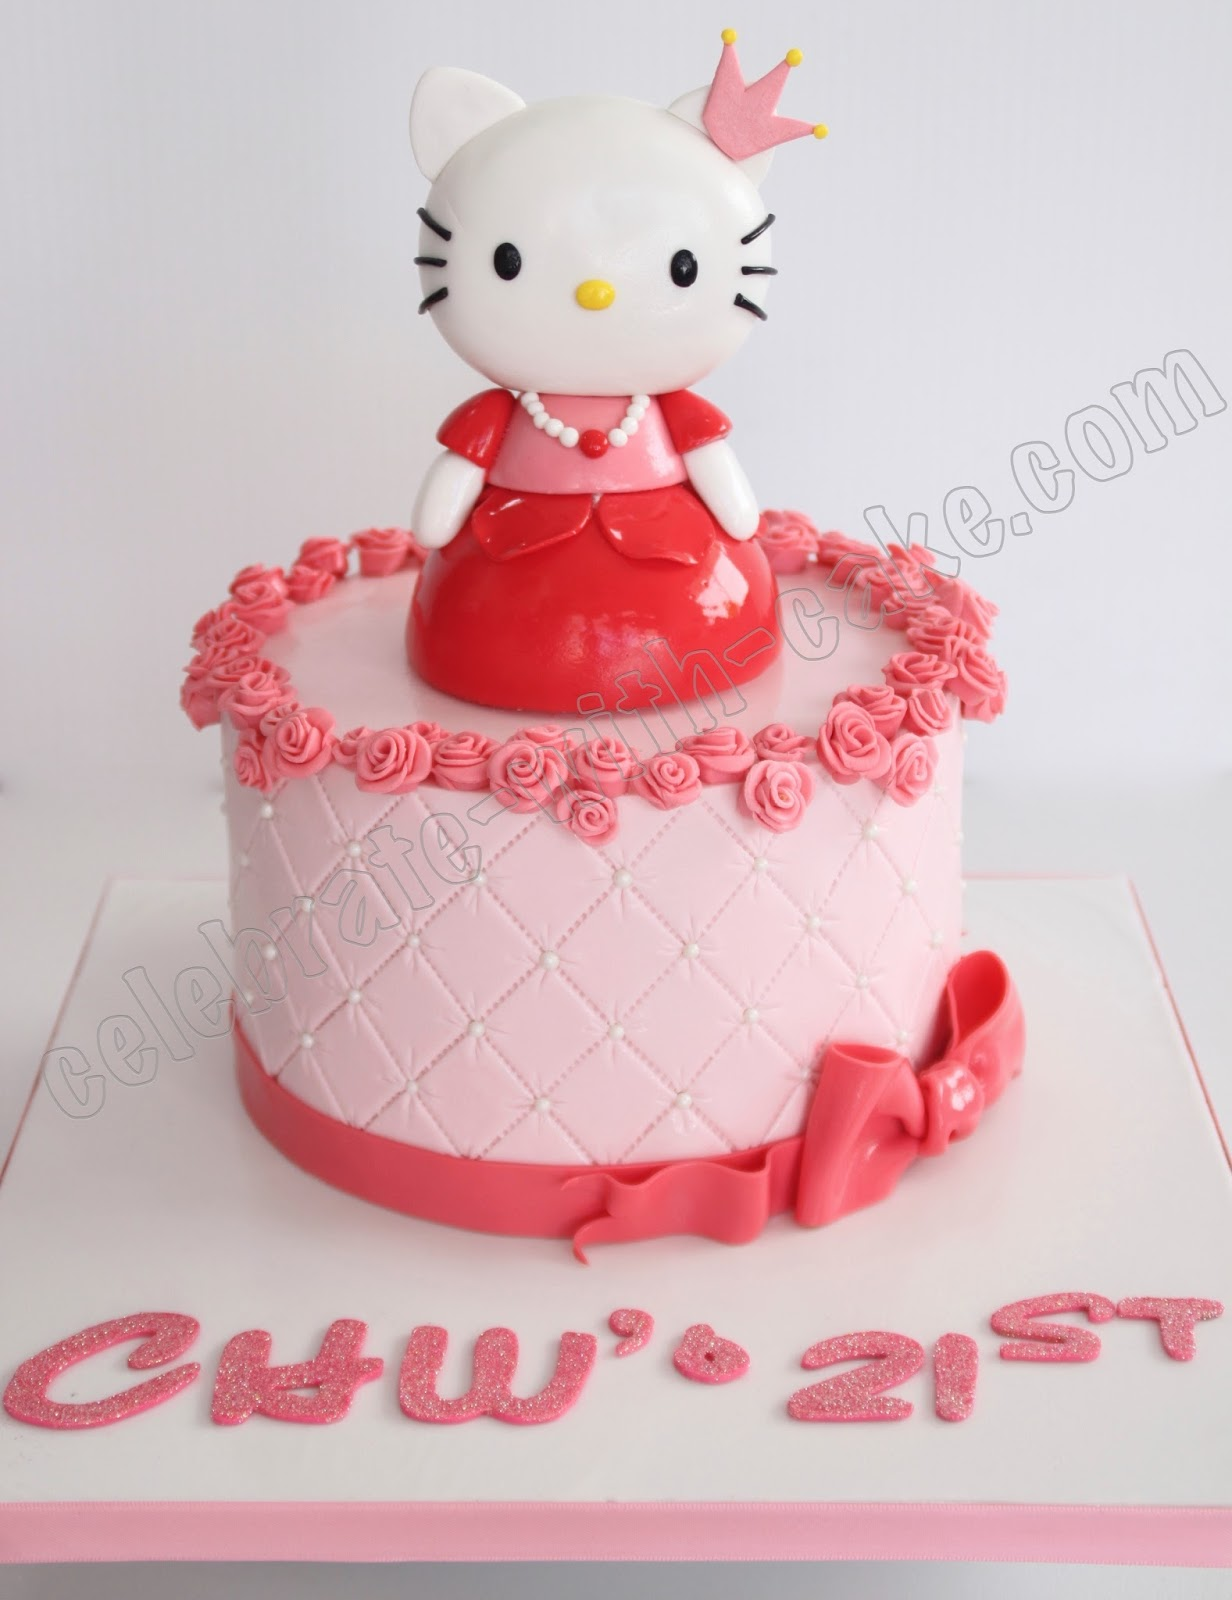 21st Birthday Princess Hello Kitty Cake